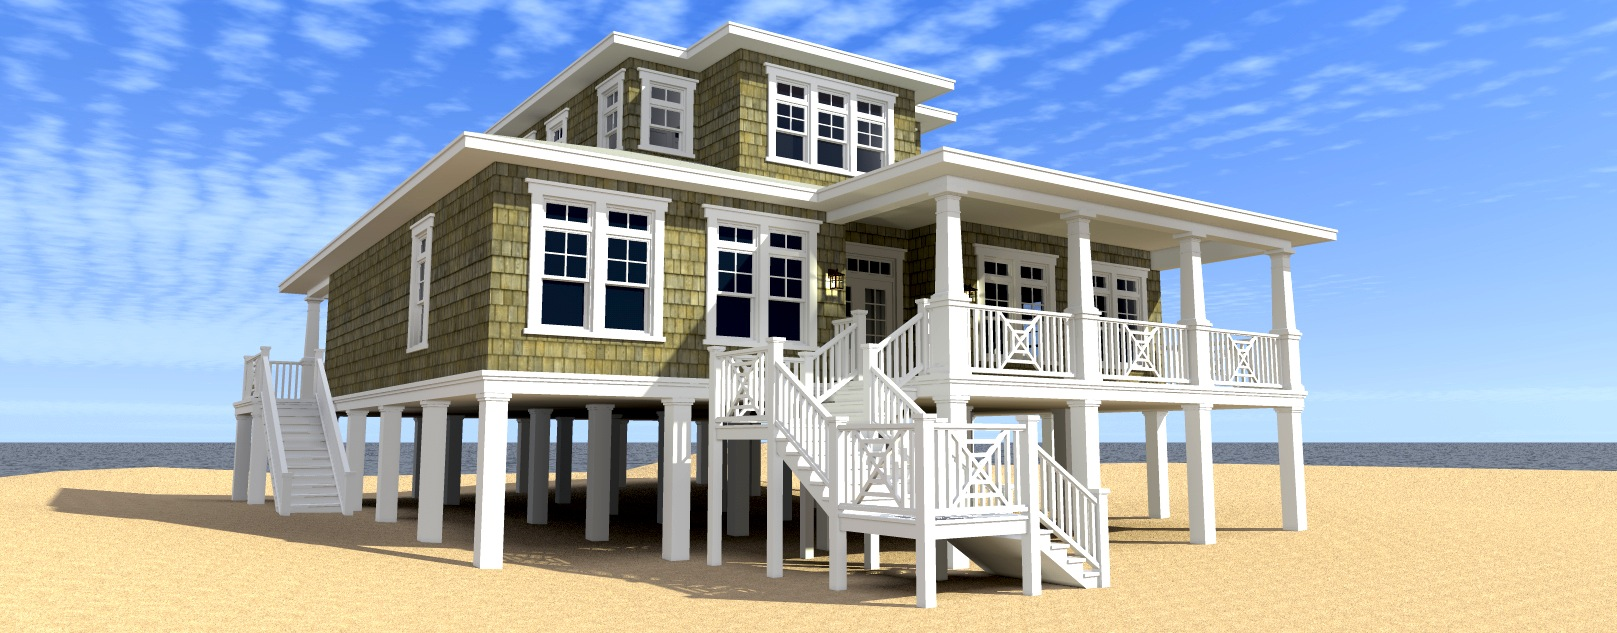 Ultimate oceanfront house plan 44117td architectural for Oceanfront house plans